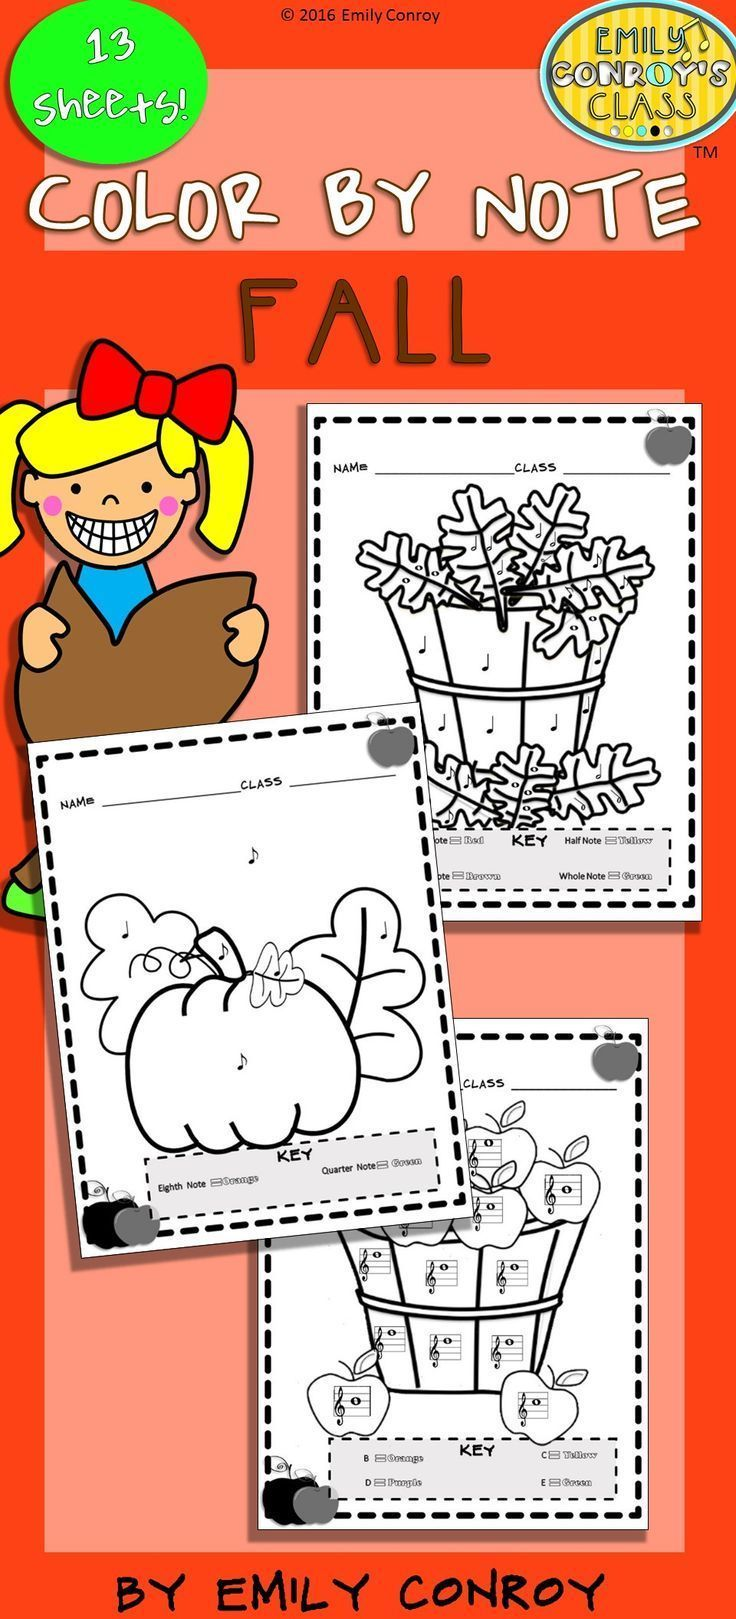 Color zen music - Music Coloring Sheets Fall Color By Note